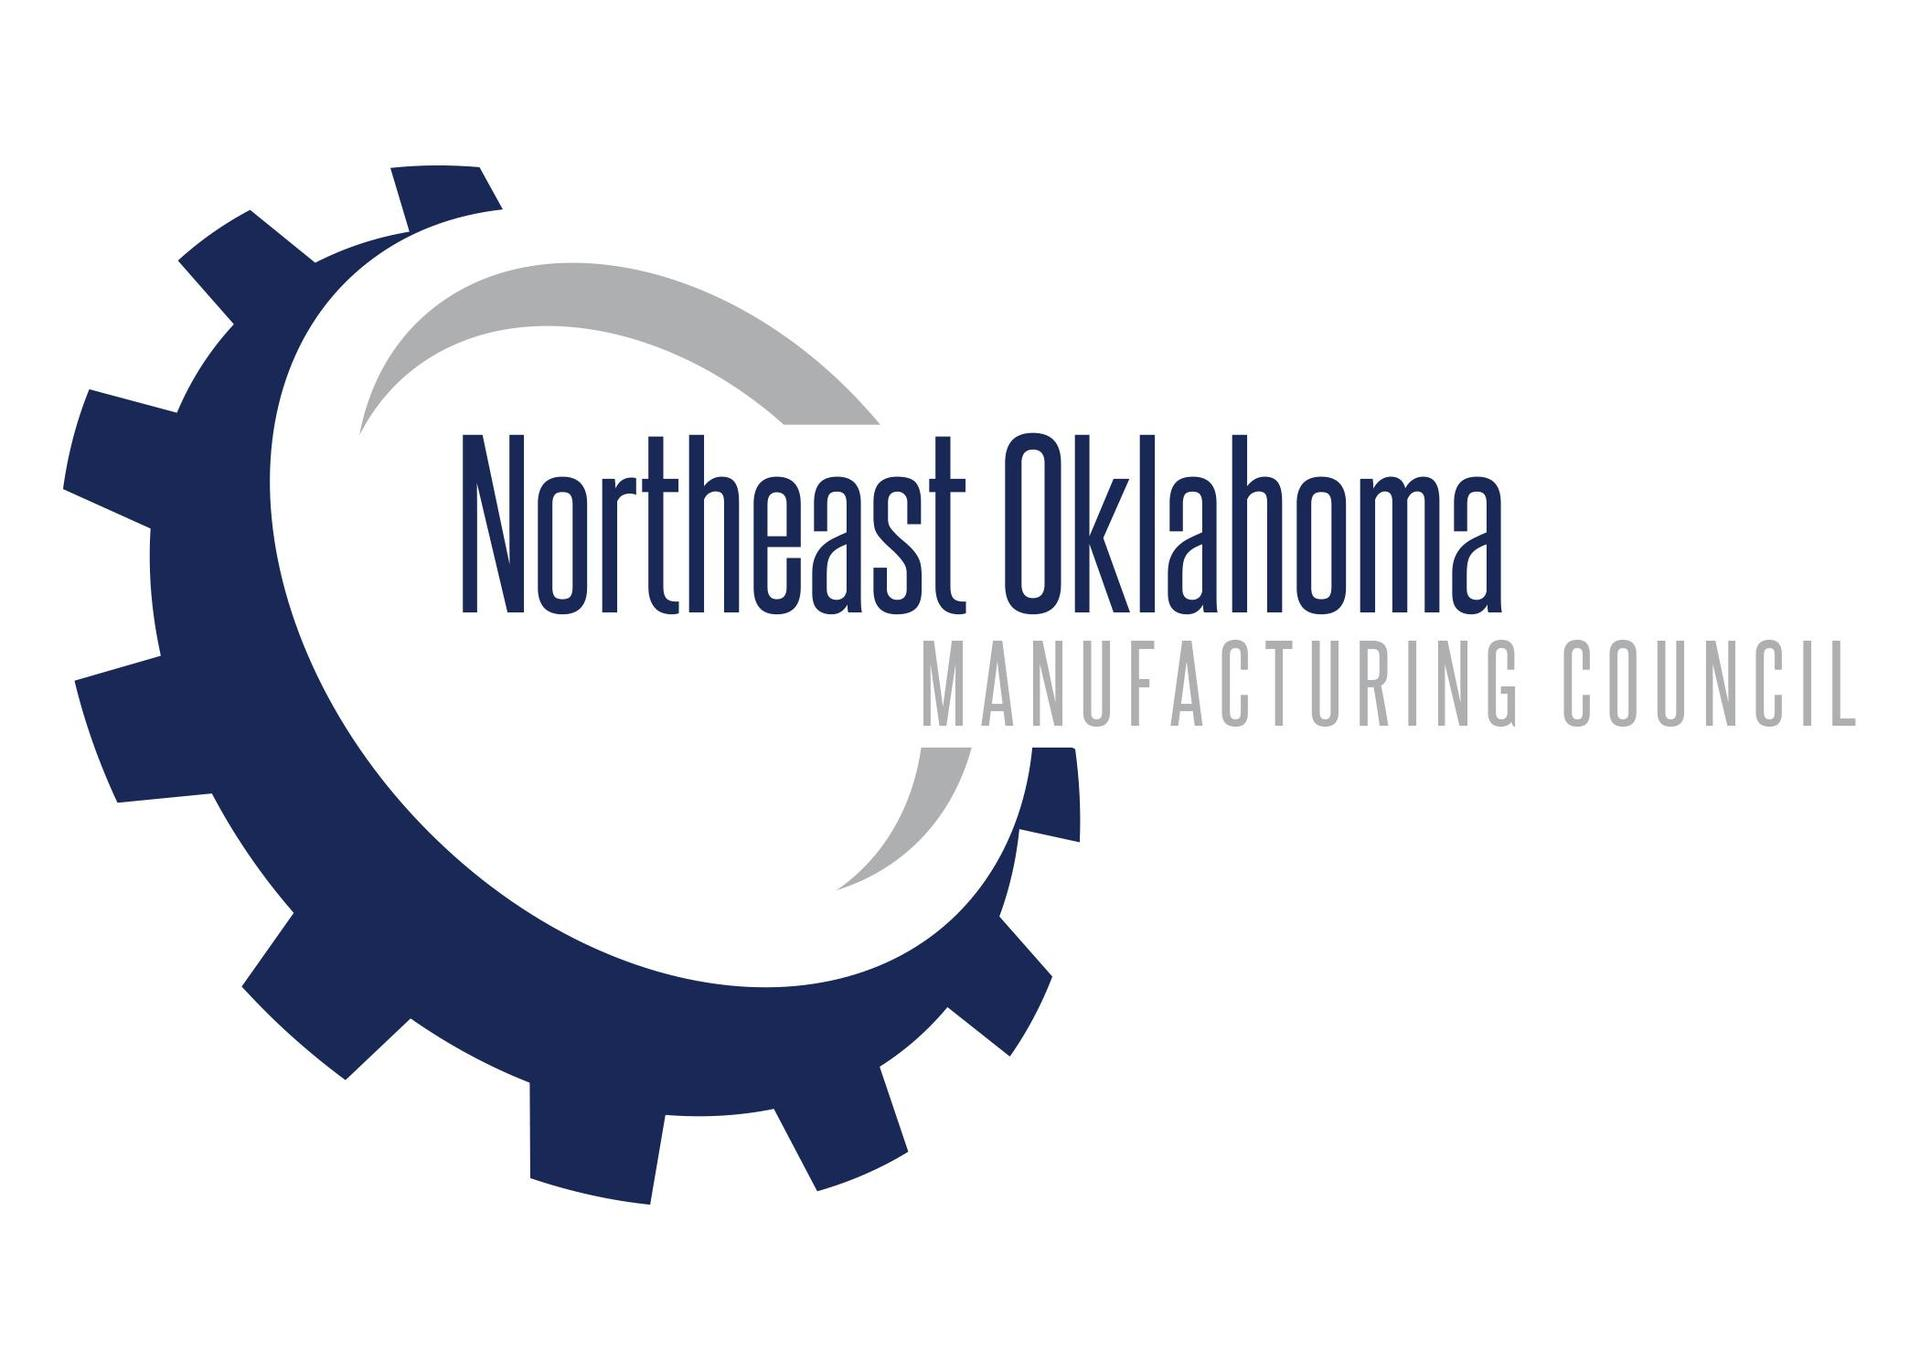 Northeast Oklahoma Manufacturing Council logo